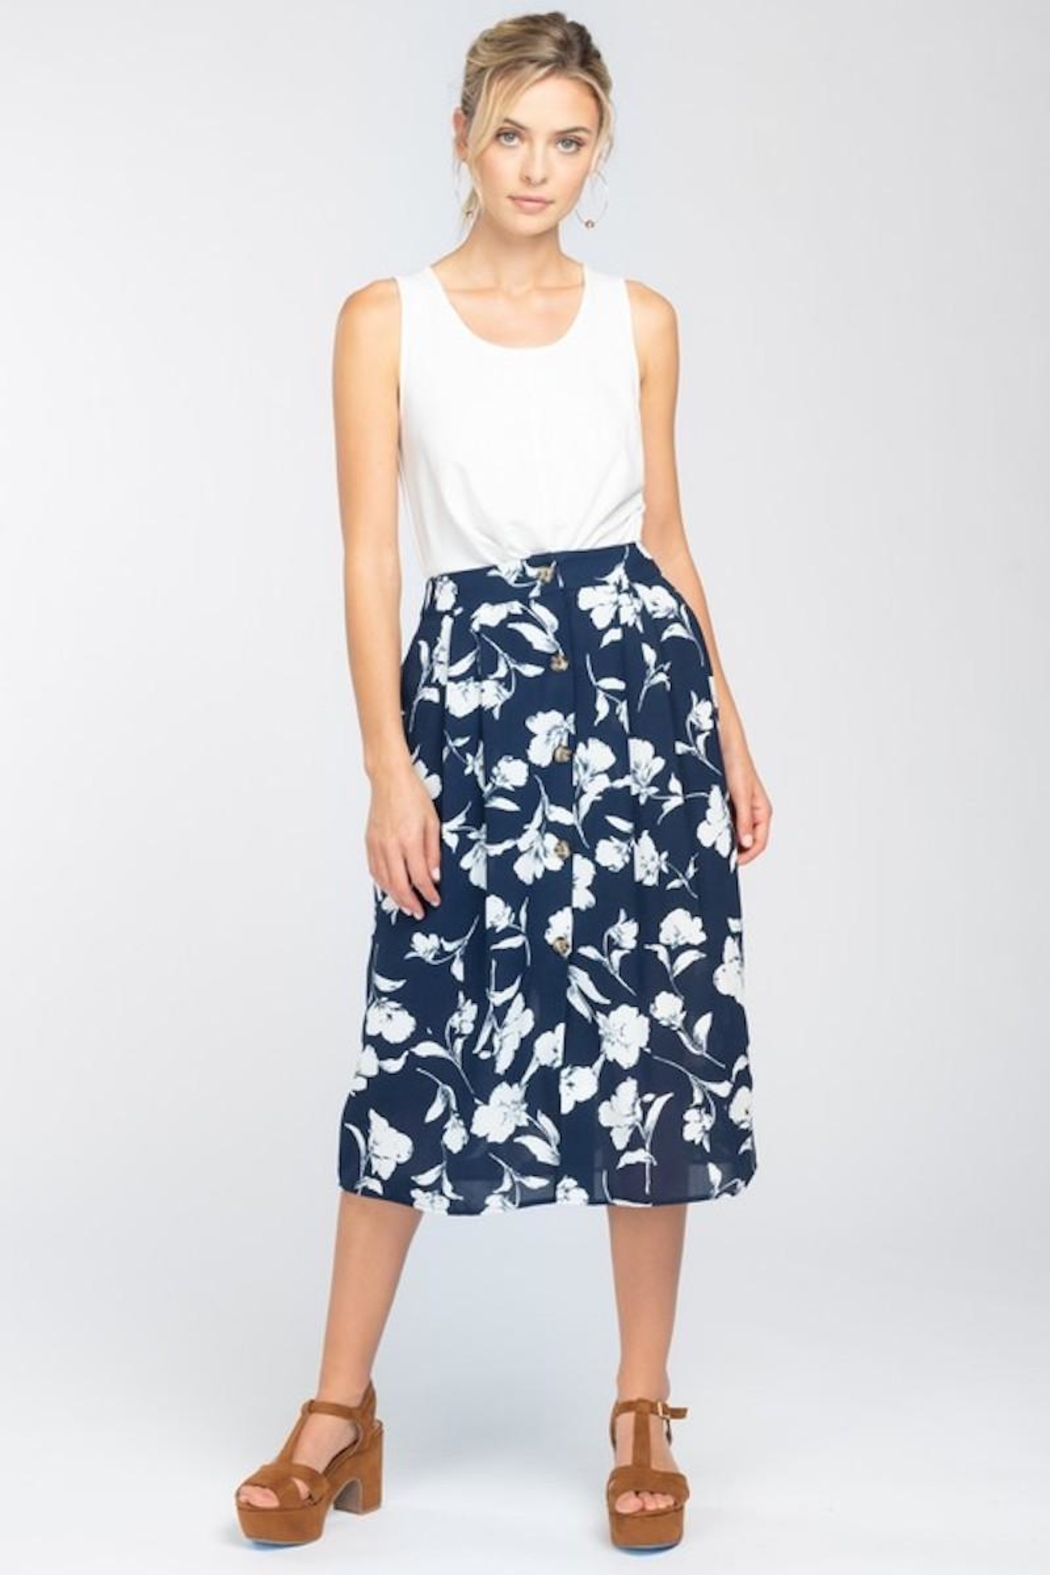 Everly Navy With White Floral Midi Skirt - Main Image